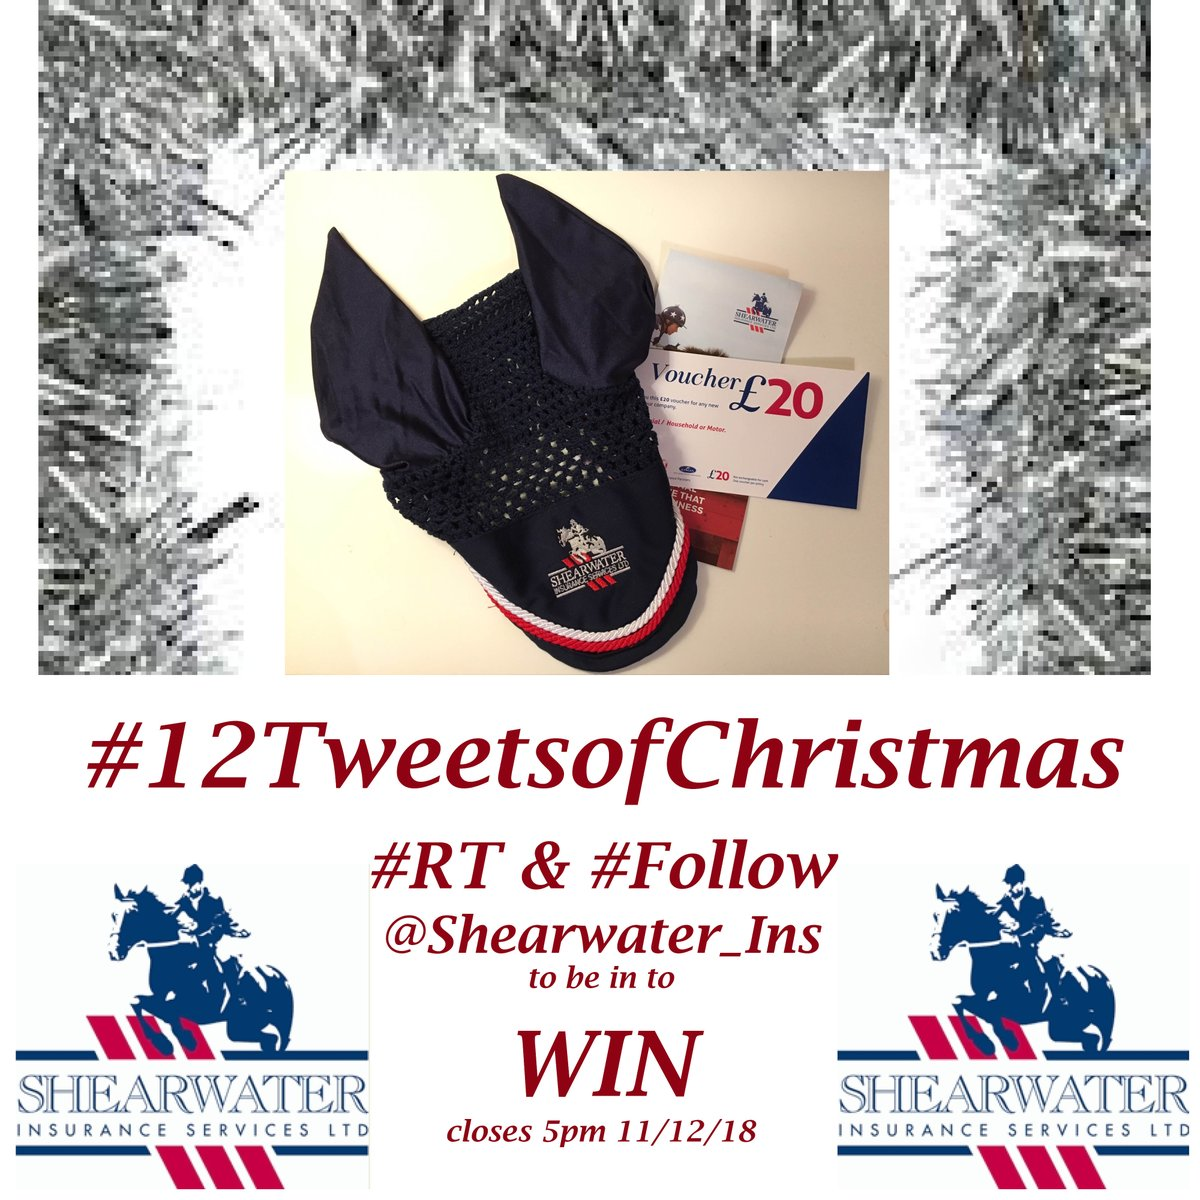 #12TweetsofChristmas FunFact #3: Things you should never do without Insurance  1. Own a horse 2. Go Skydiving 3. Shop in London after December 23rd 4. Meet Donald Trump 5. Offer to be the photographer at Bechers brook 6. Wear sunglasses at night #RT #Folow @Shearwater_Ins  #win